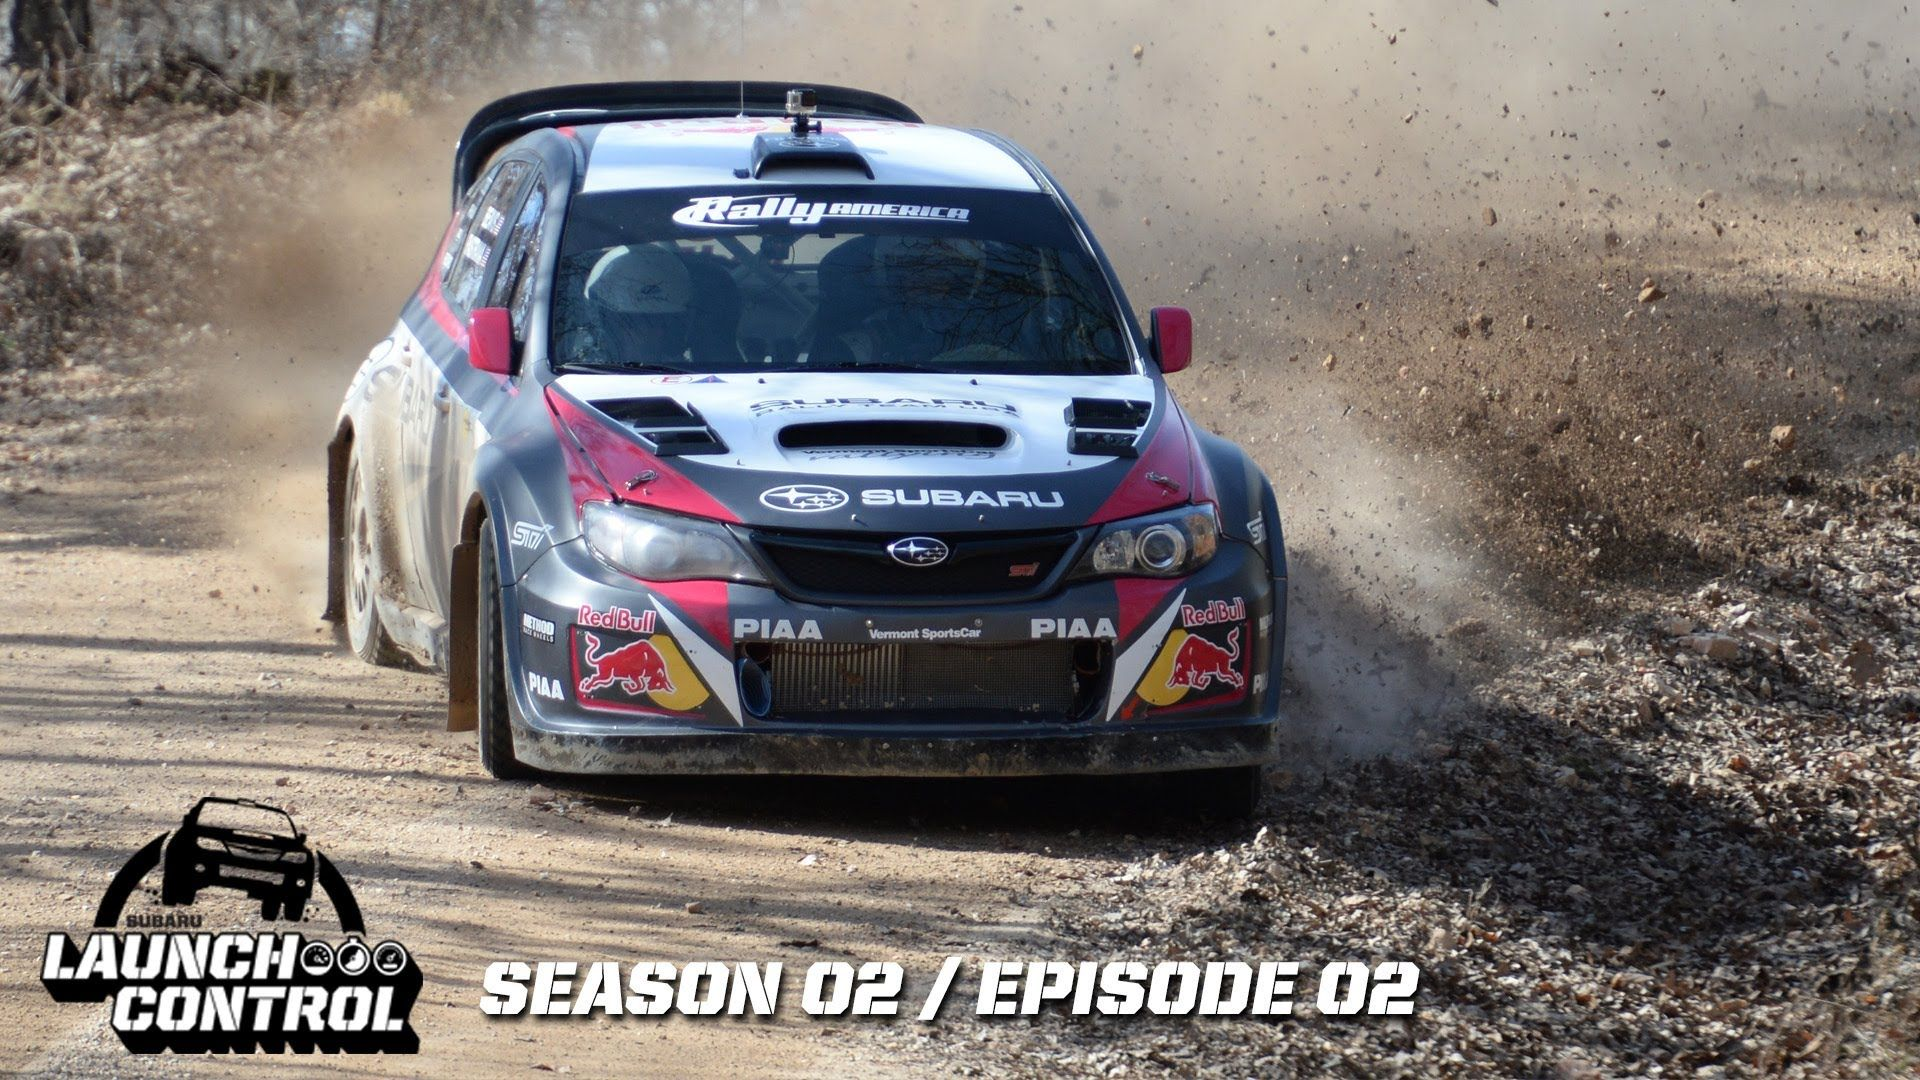 Launch Control Pastrana Returns to Rally and Subaru prepares for